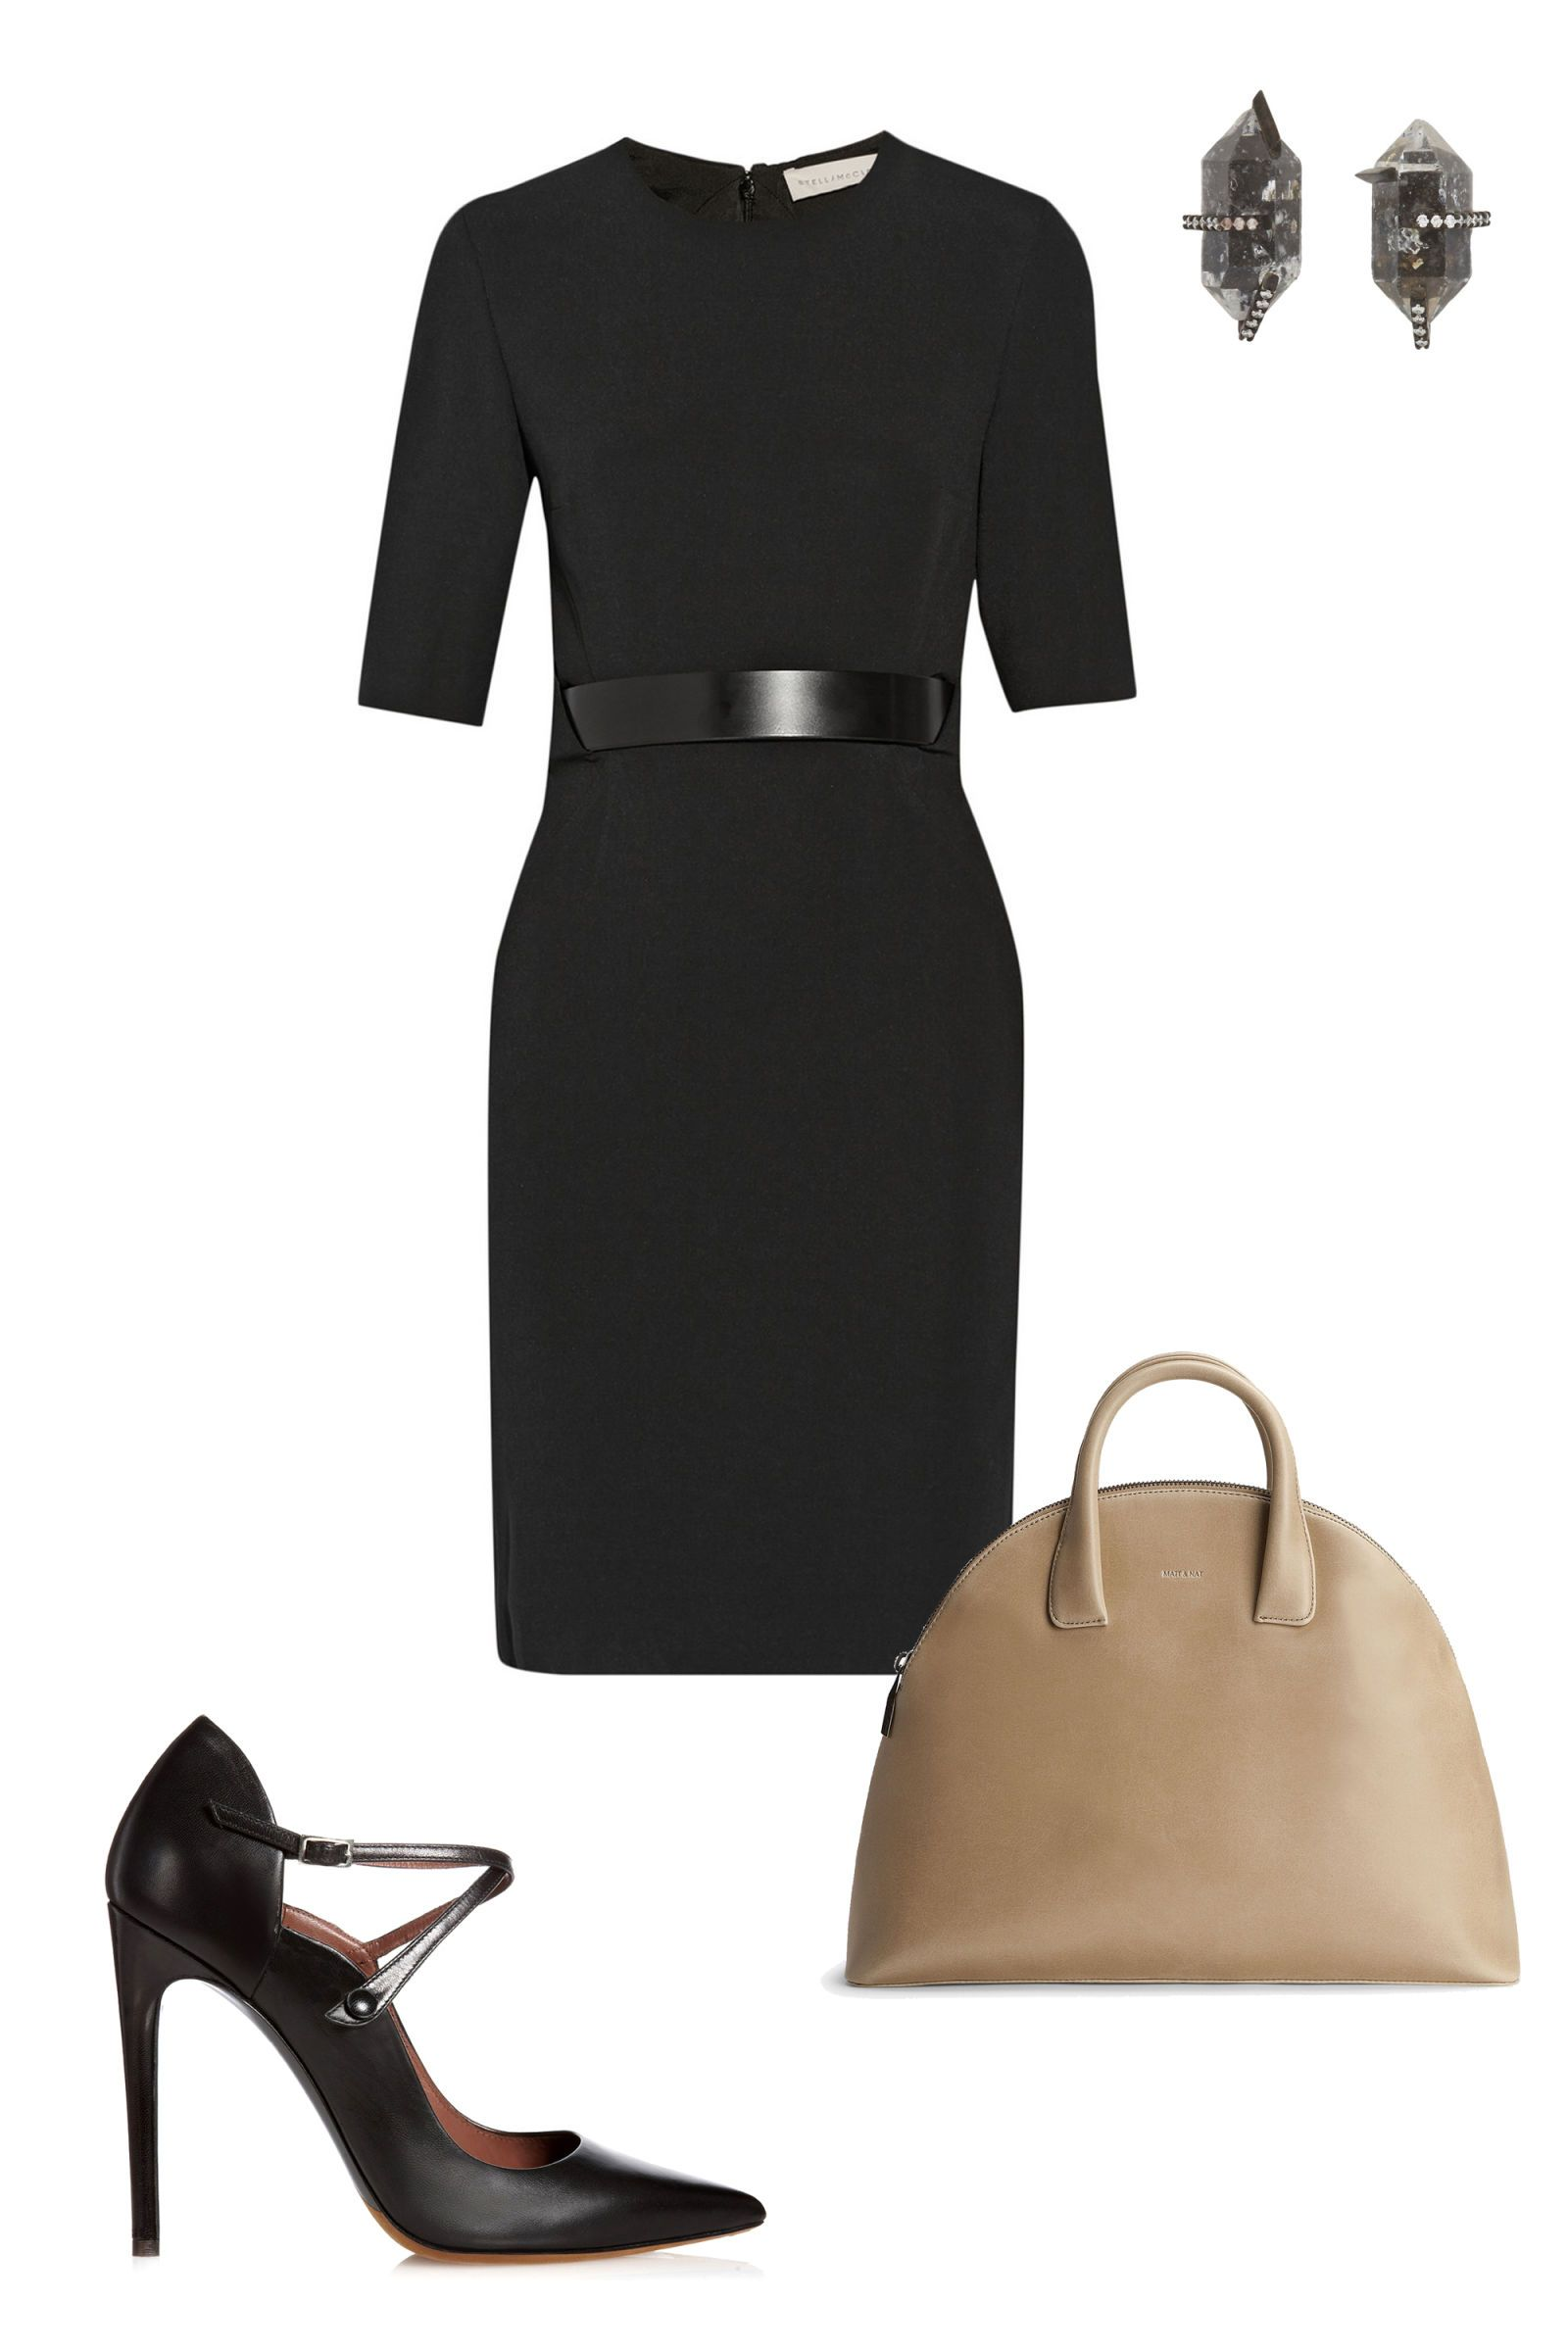 91a4de443555e They say you should dress for the job you want. A fitted dress and an  intimidating pair of pumps scream